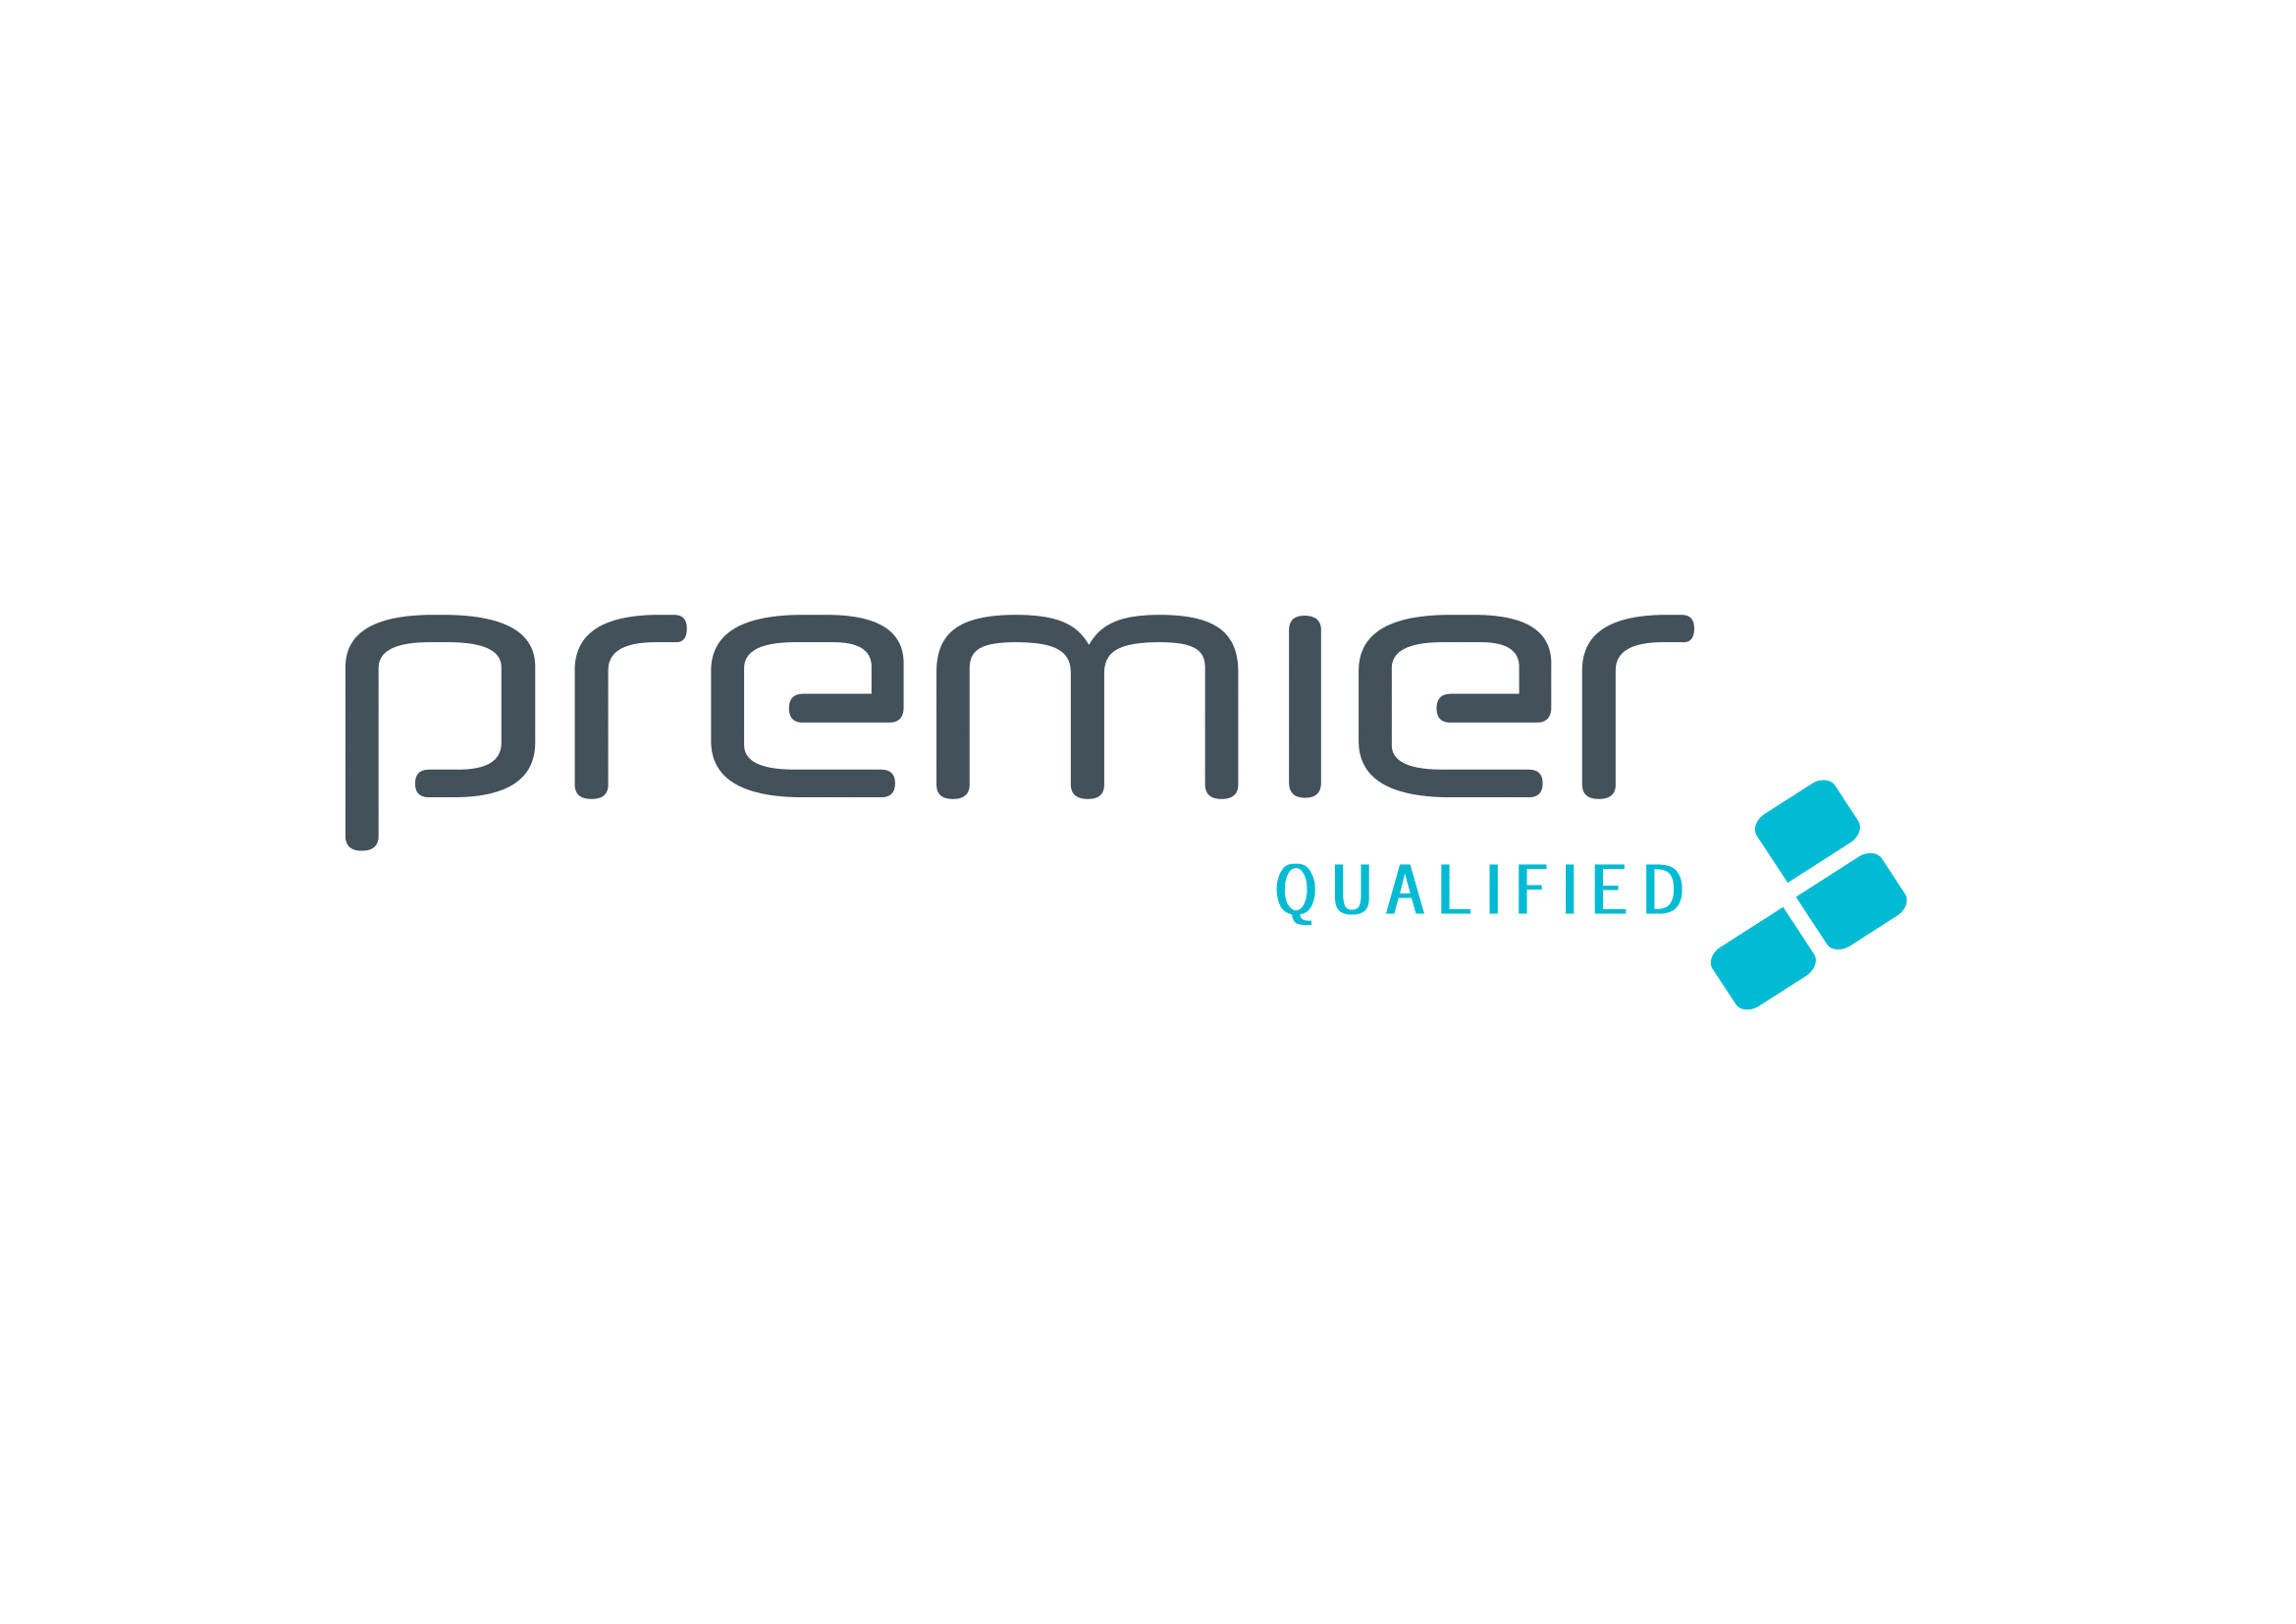 Premier Logo 3115 Qualified-1.png